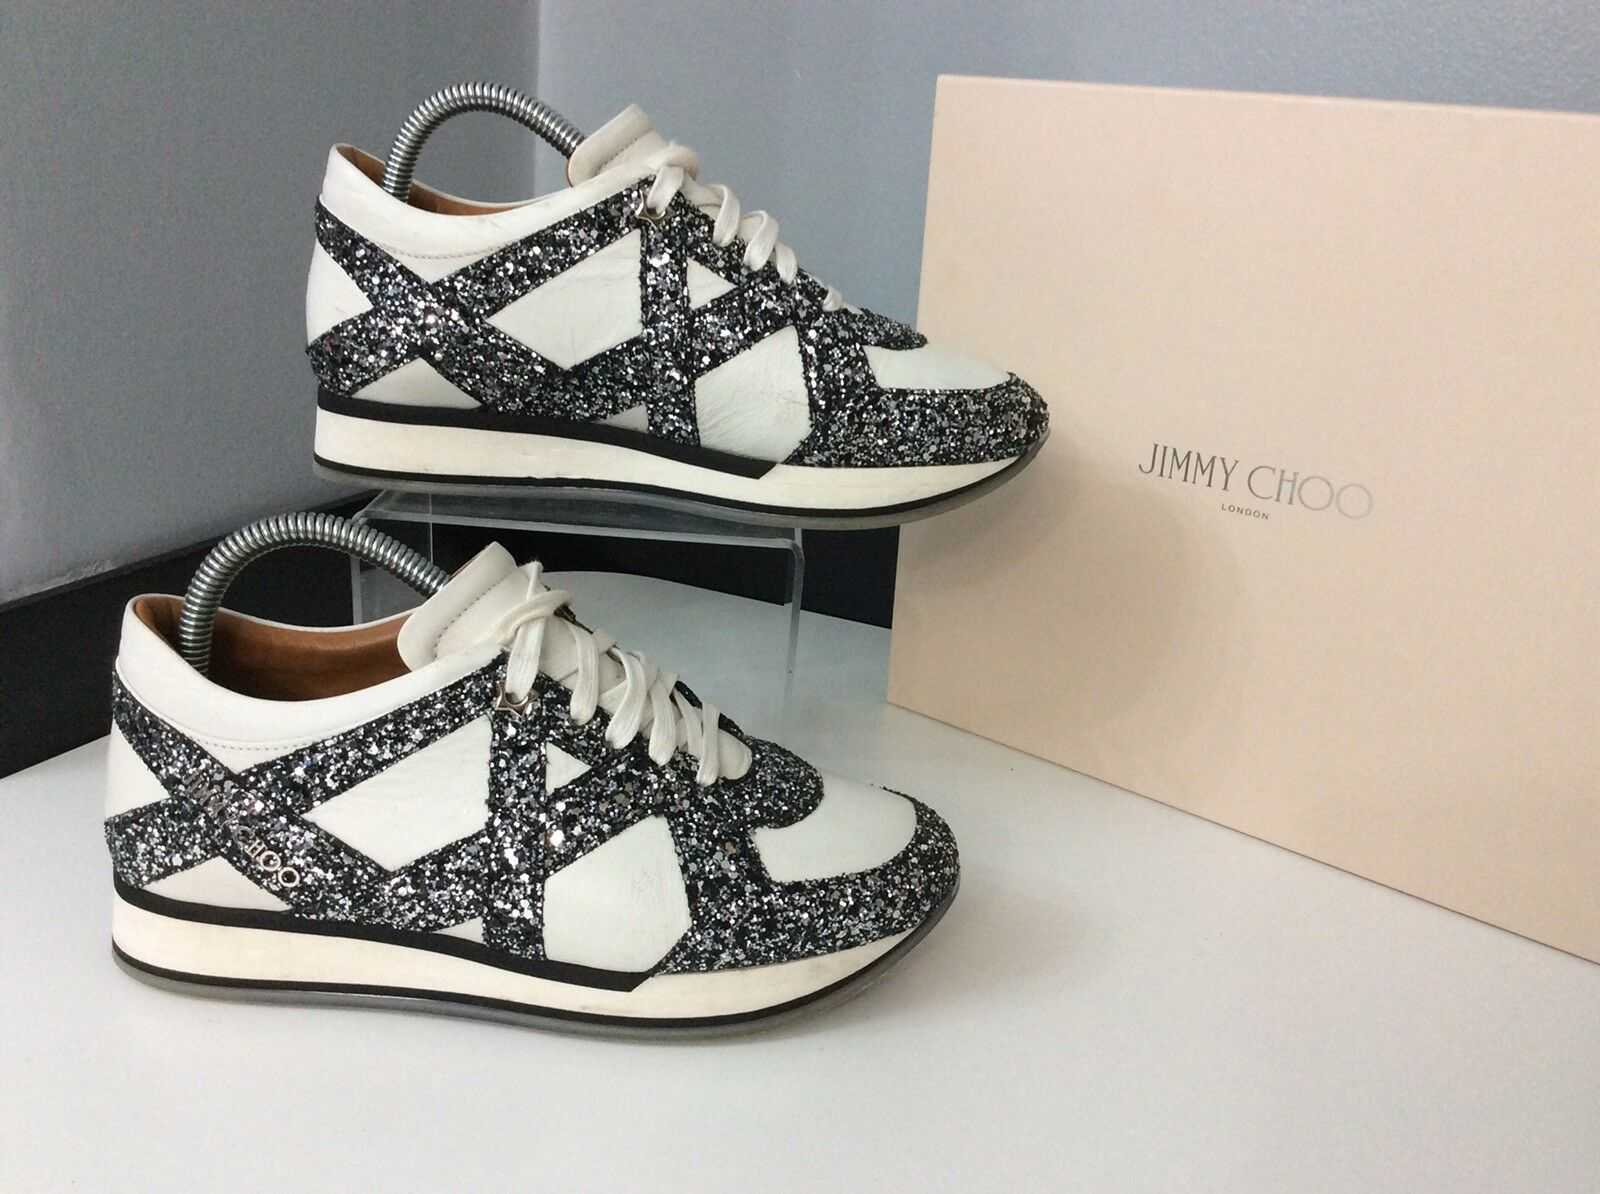 Jimmy Choo White Glitter Trainers Sneakers Size 38.5 Uk 5.5 Vgc Boxed Rrp